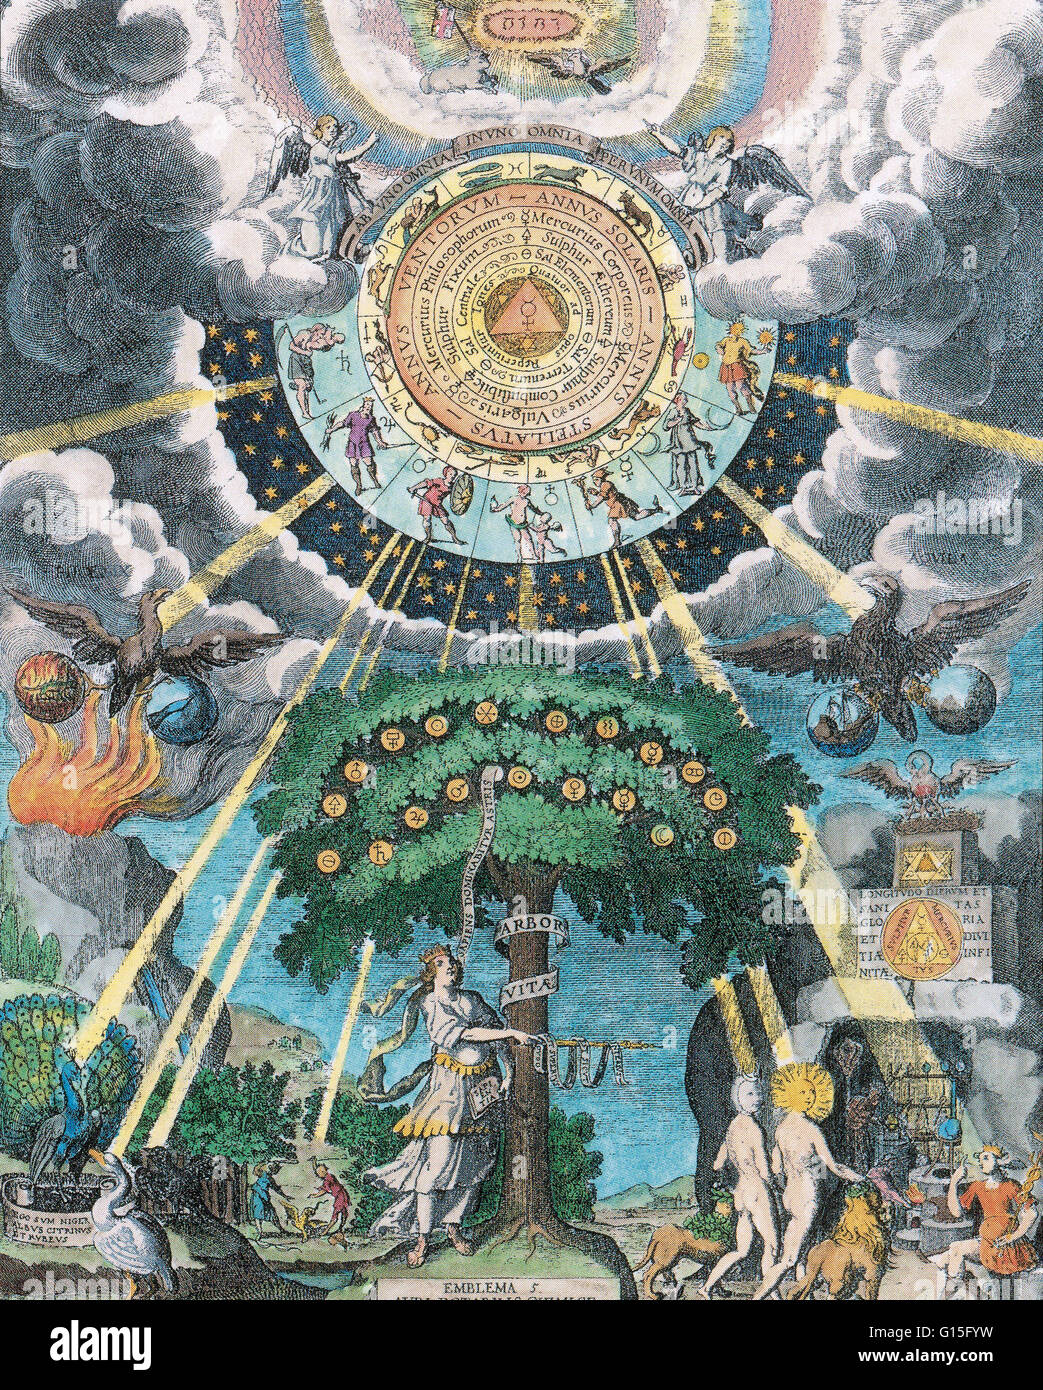 From the alchemical tradition the tree of life is a symbol of the from the alchemical tradition the tree of life is a symbol of the opus magnum the goal of the alchemical journey which is to find the philosophers stone buycottarizona Image collections